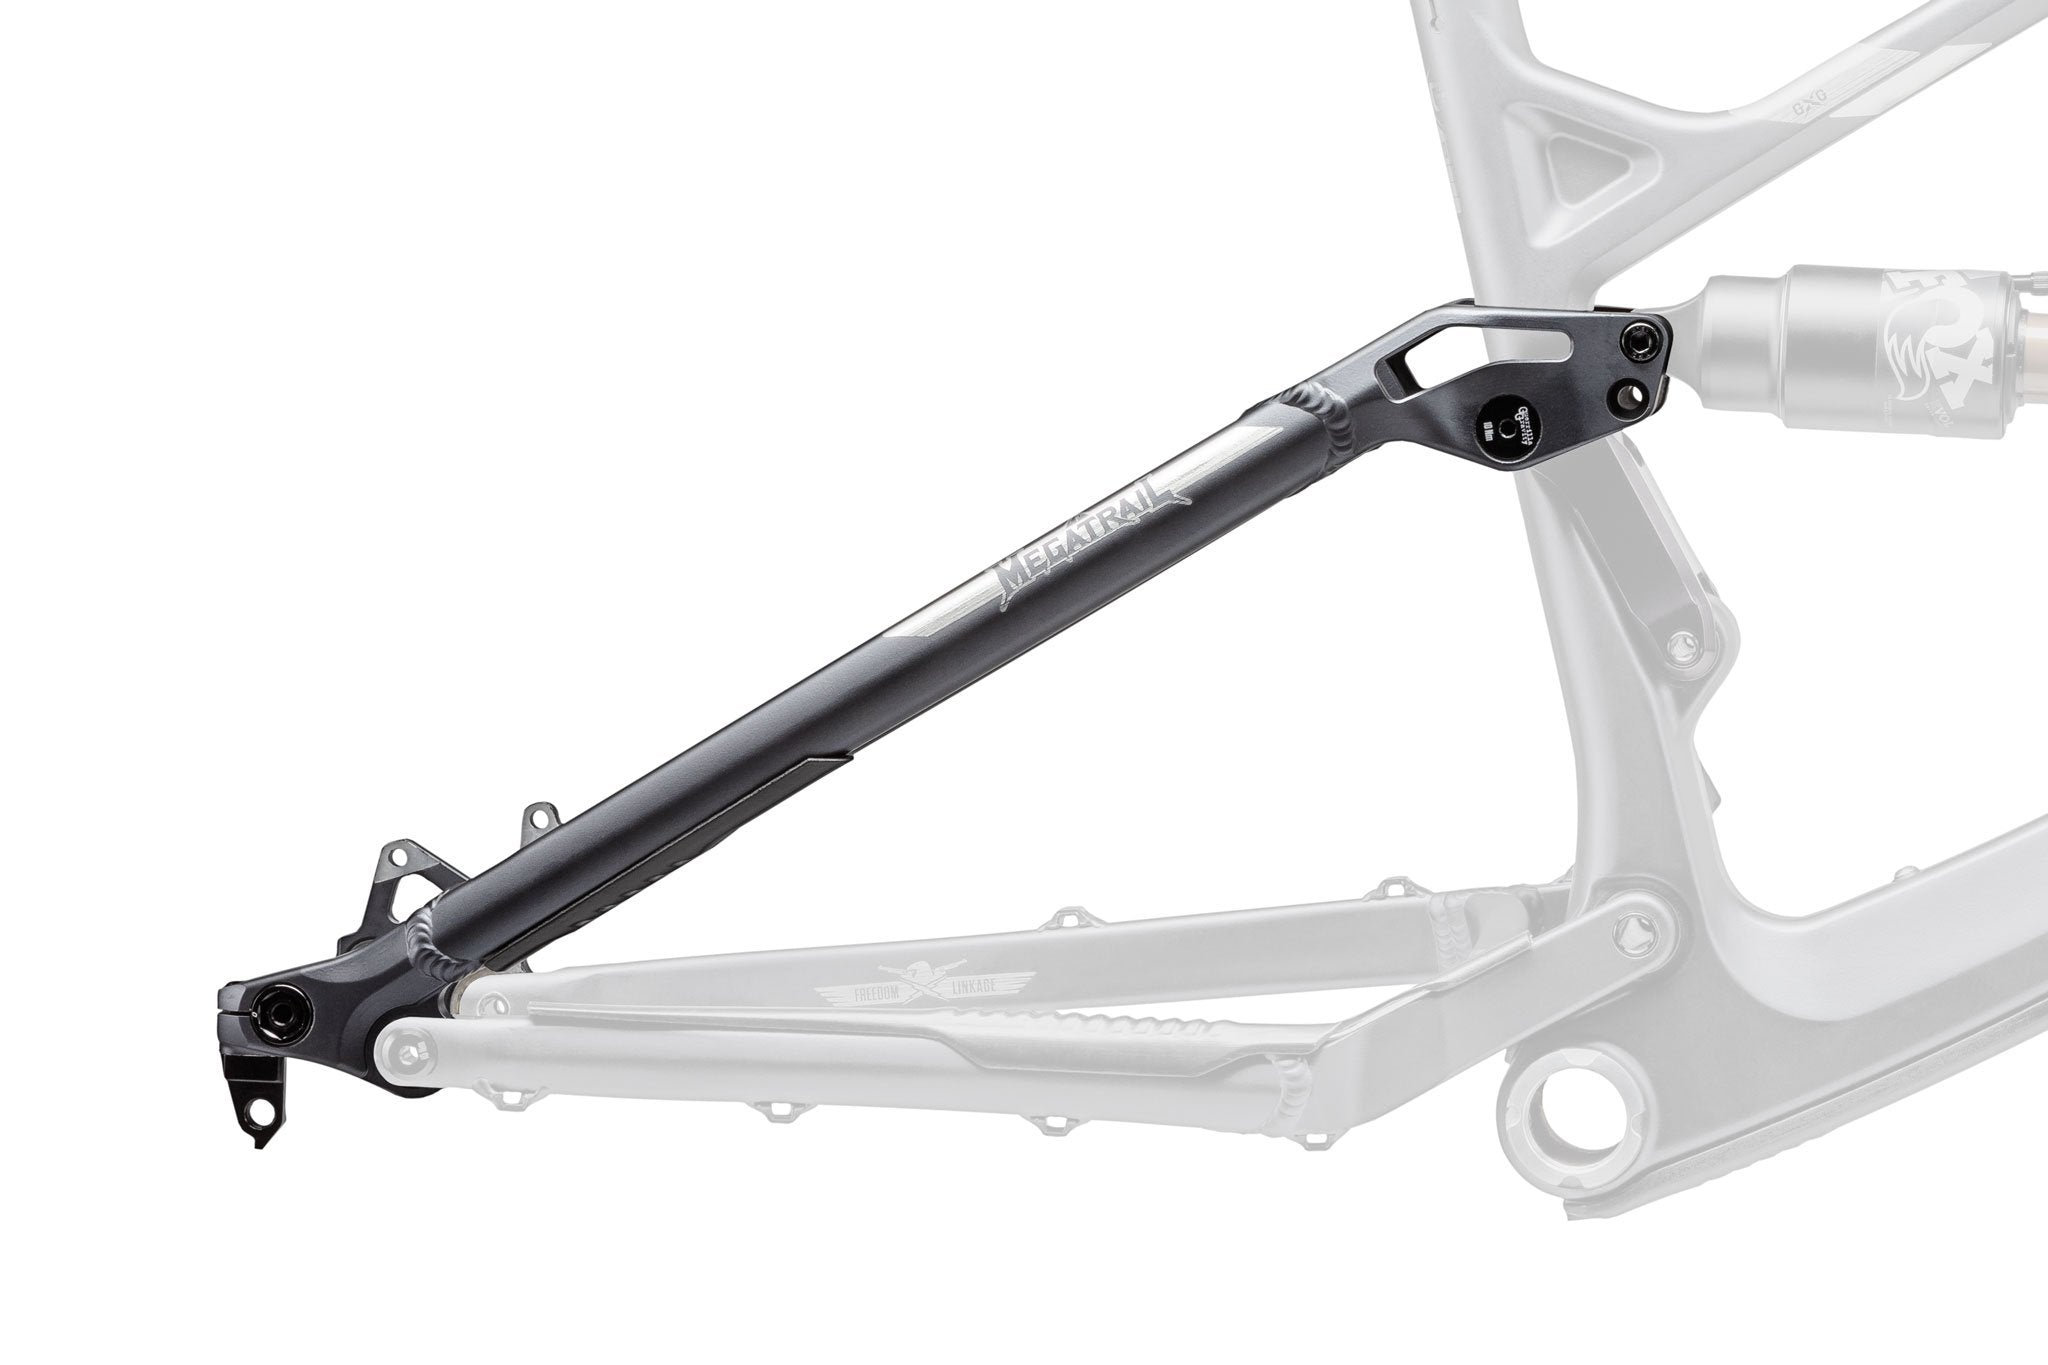 Megatrail Seatstay Kit - Seatstay Kit